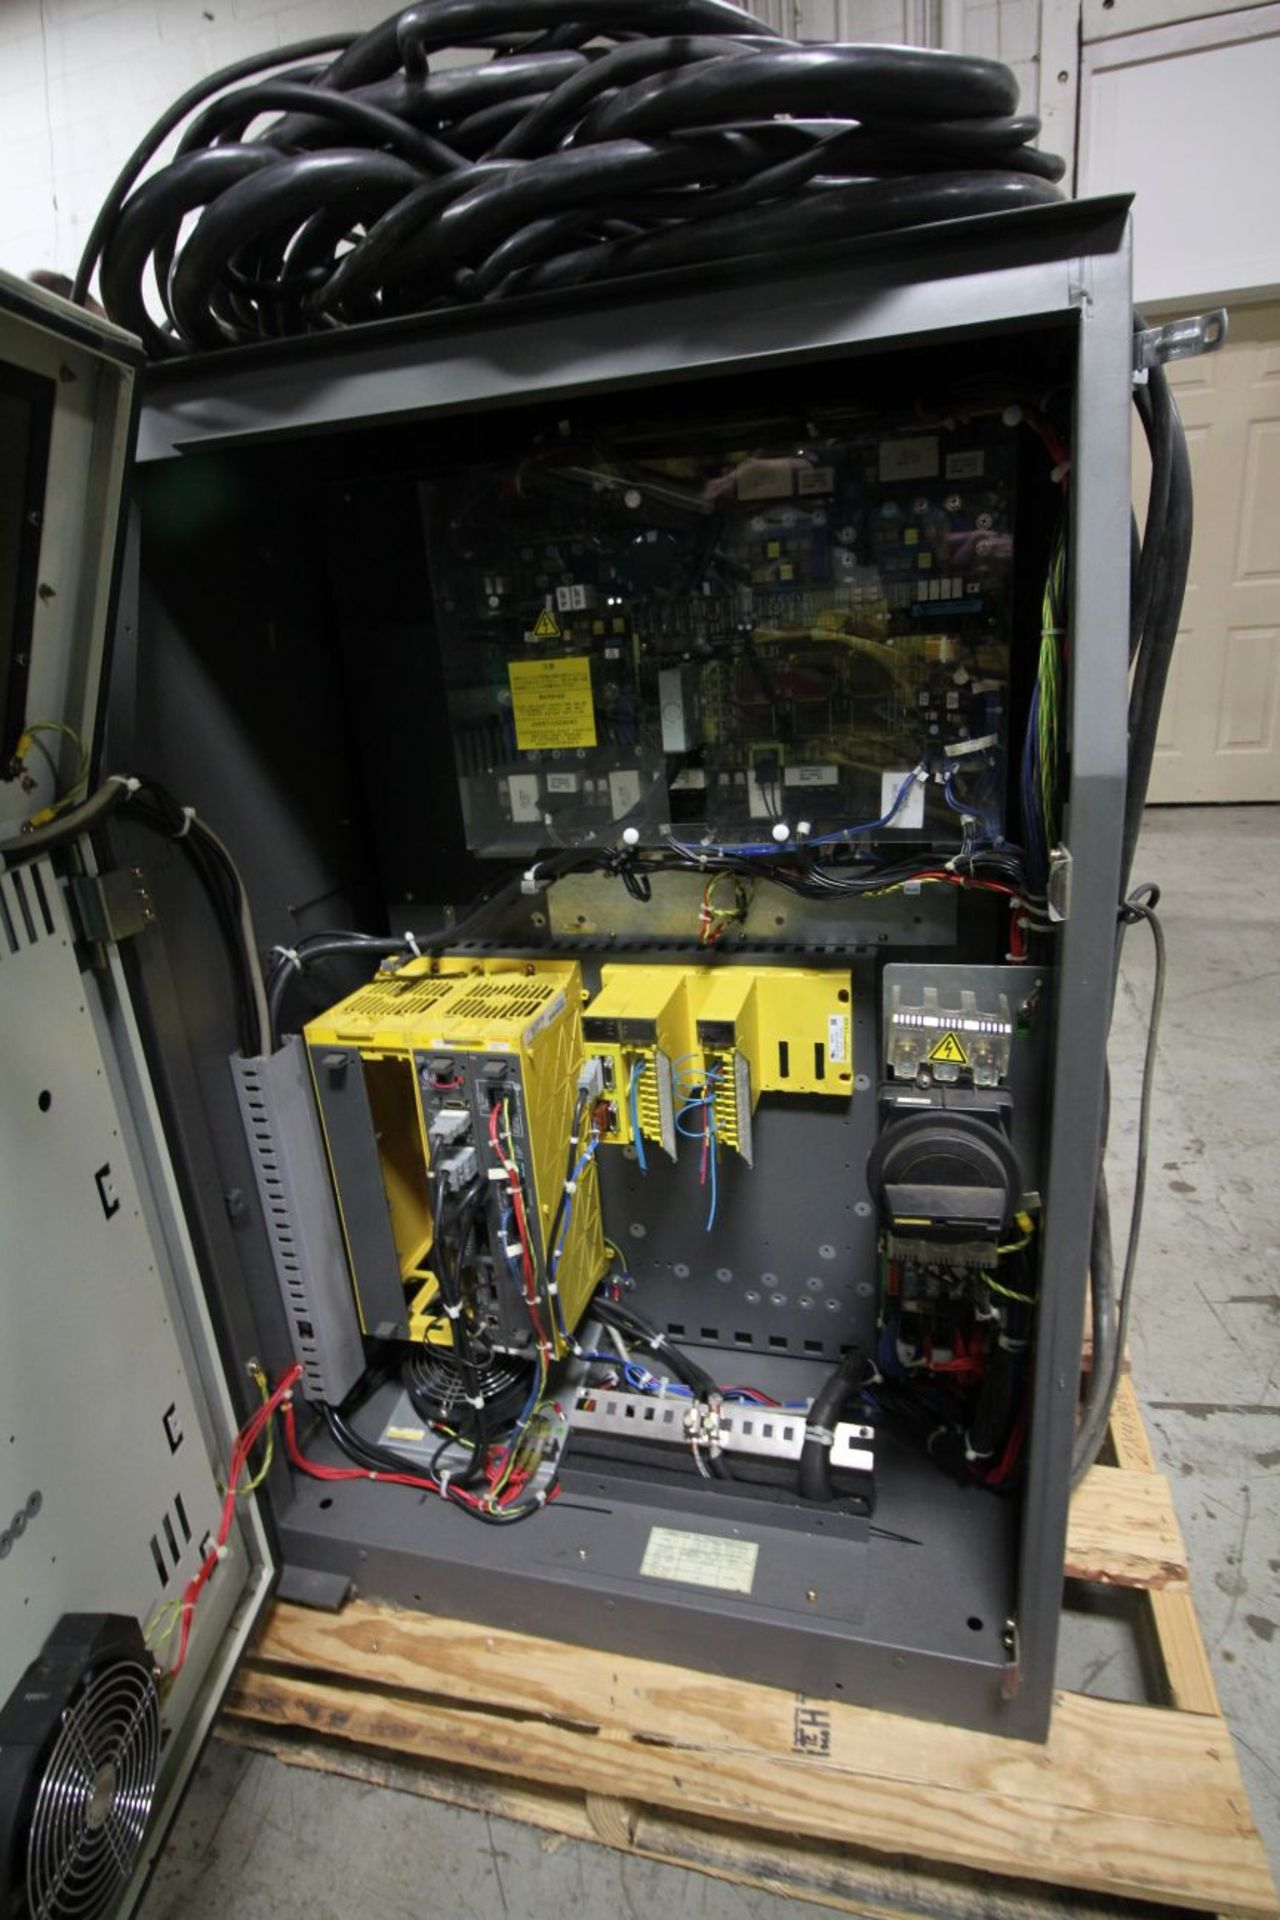 Lot 35 - FANUC ROBOT R2000iA/200FO WITH R-J3iB CONTROLS, TEACH & CABLES, YEAR 2005, SN 805497, COMP. REFURBED